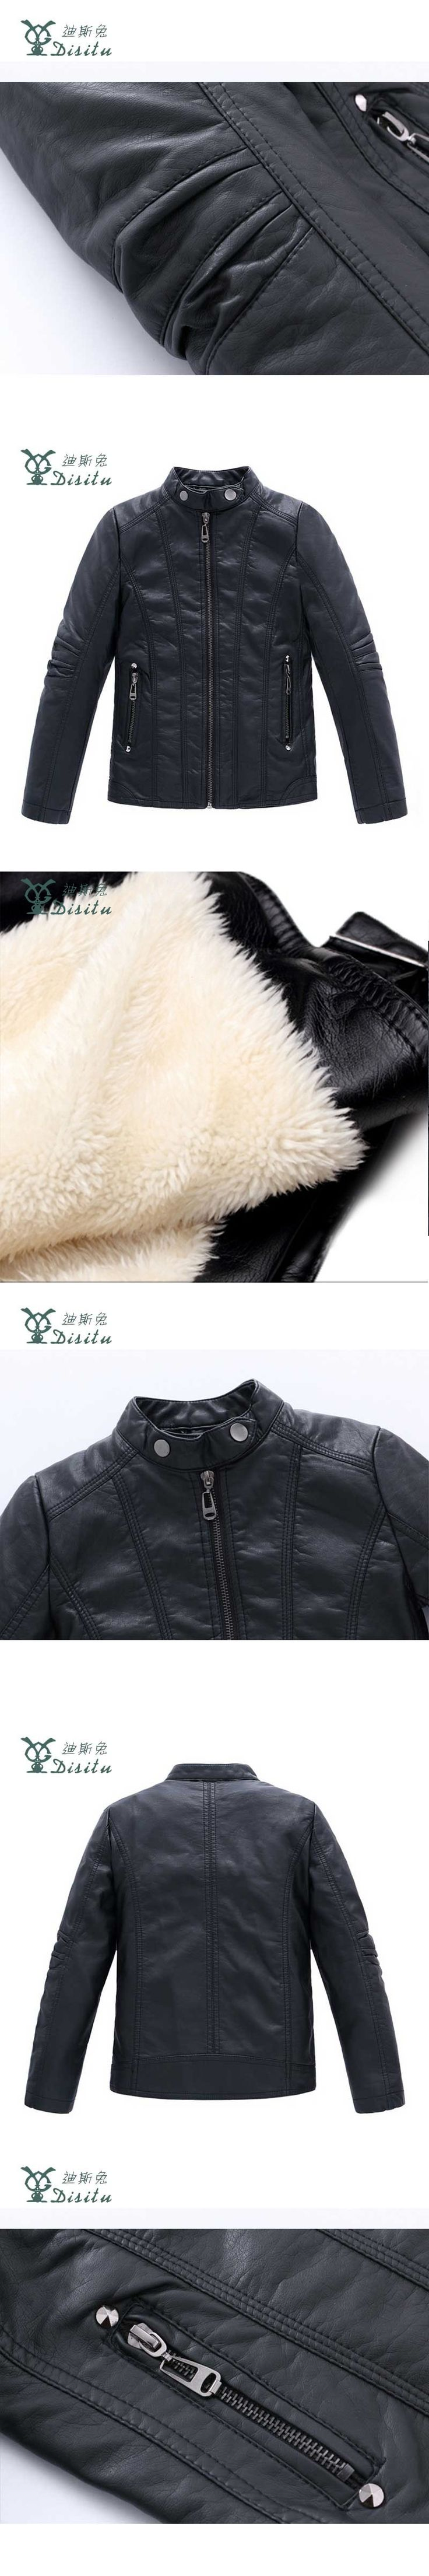 DISITU Brand 2017 PU Leather Thicker Jacket For Boys Girls  Overcoat Boys Kids Jacket Winter Children Coat Jackets For 2-12 Year